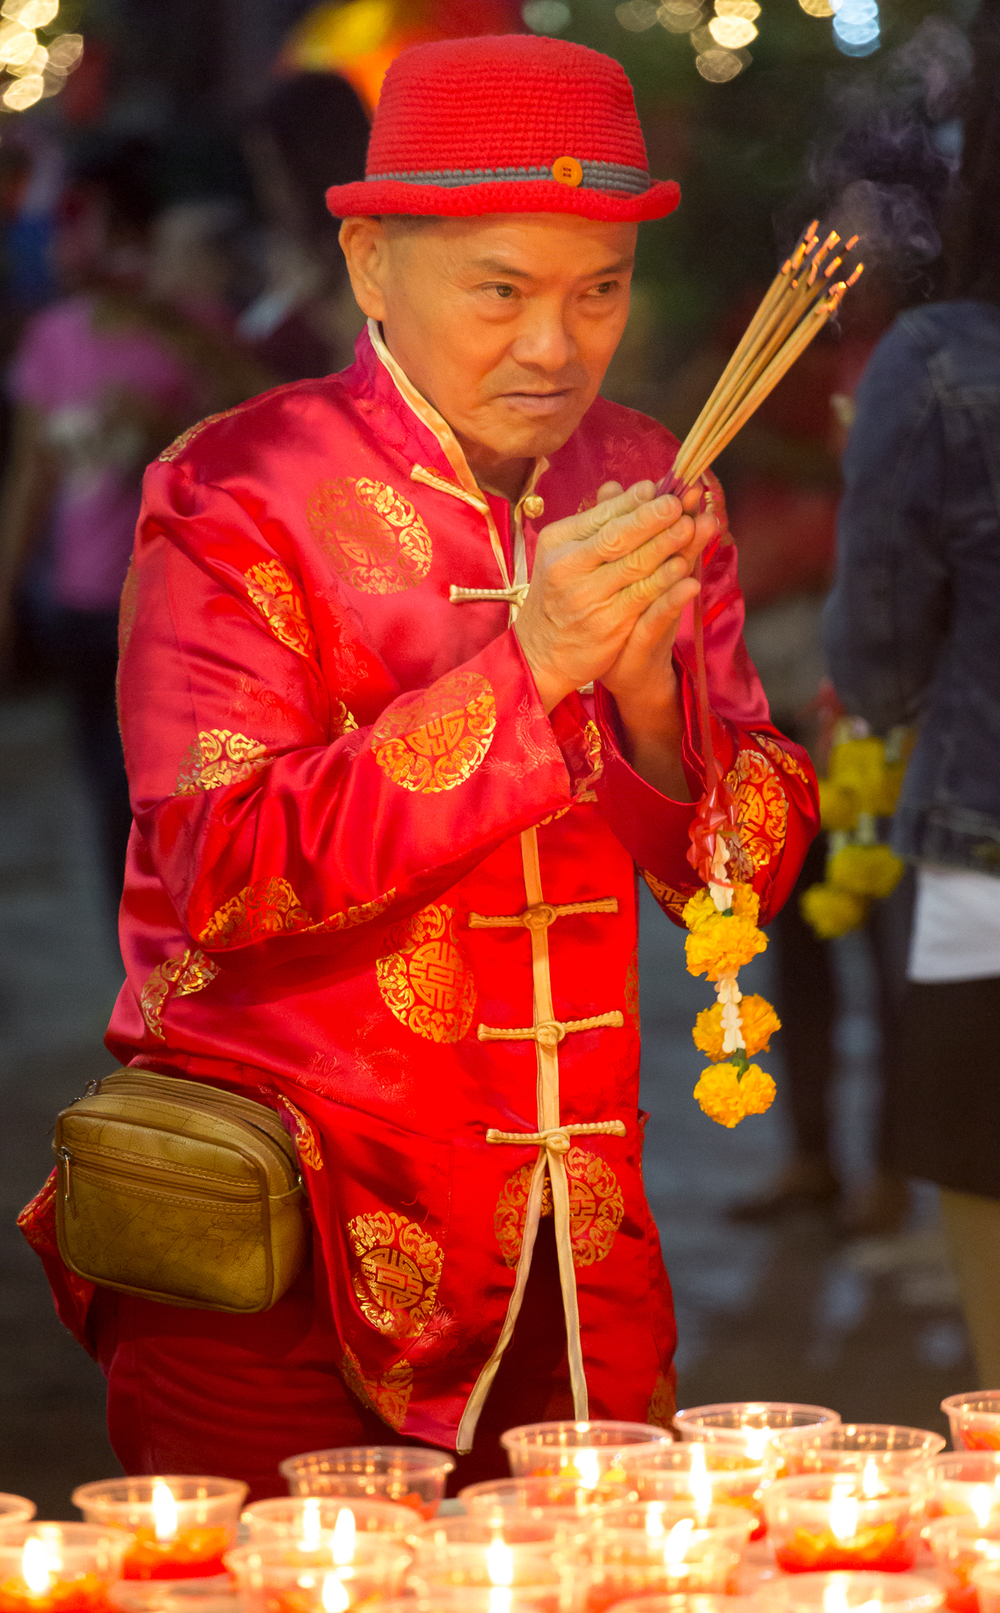 Raat, a Bangkok native, prays and holds lighted incense he intends to give as an offering in Wat Mangkon Kamalawat on the eve of the Lunar New Year.